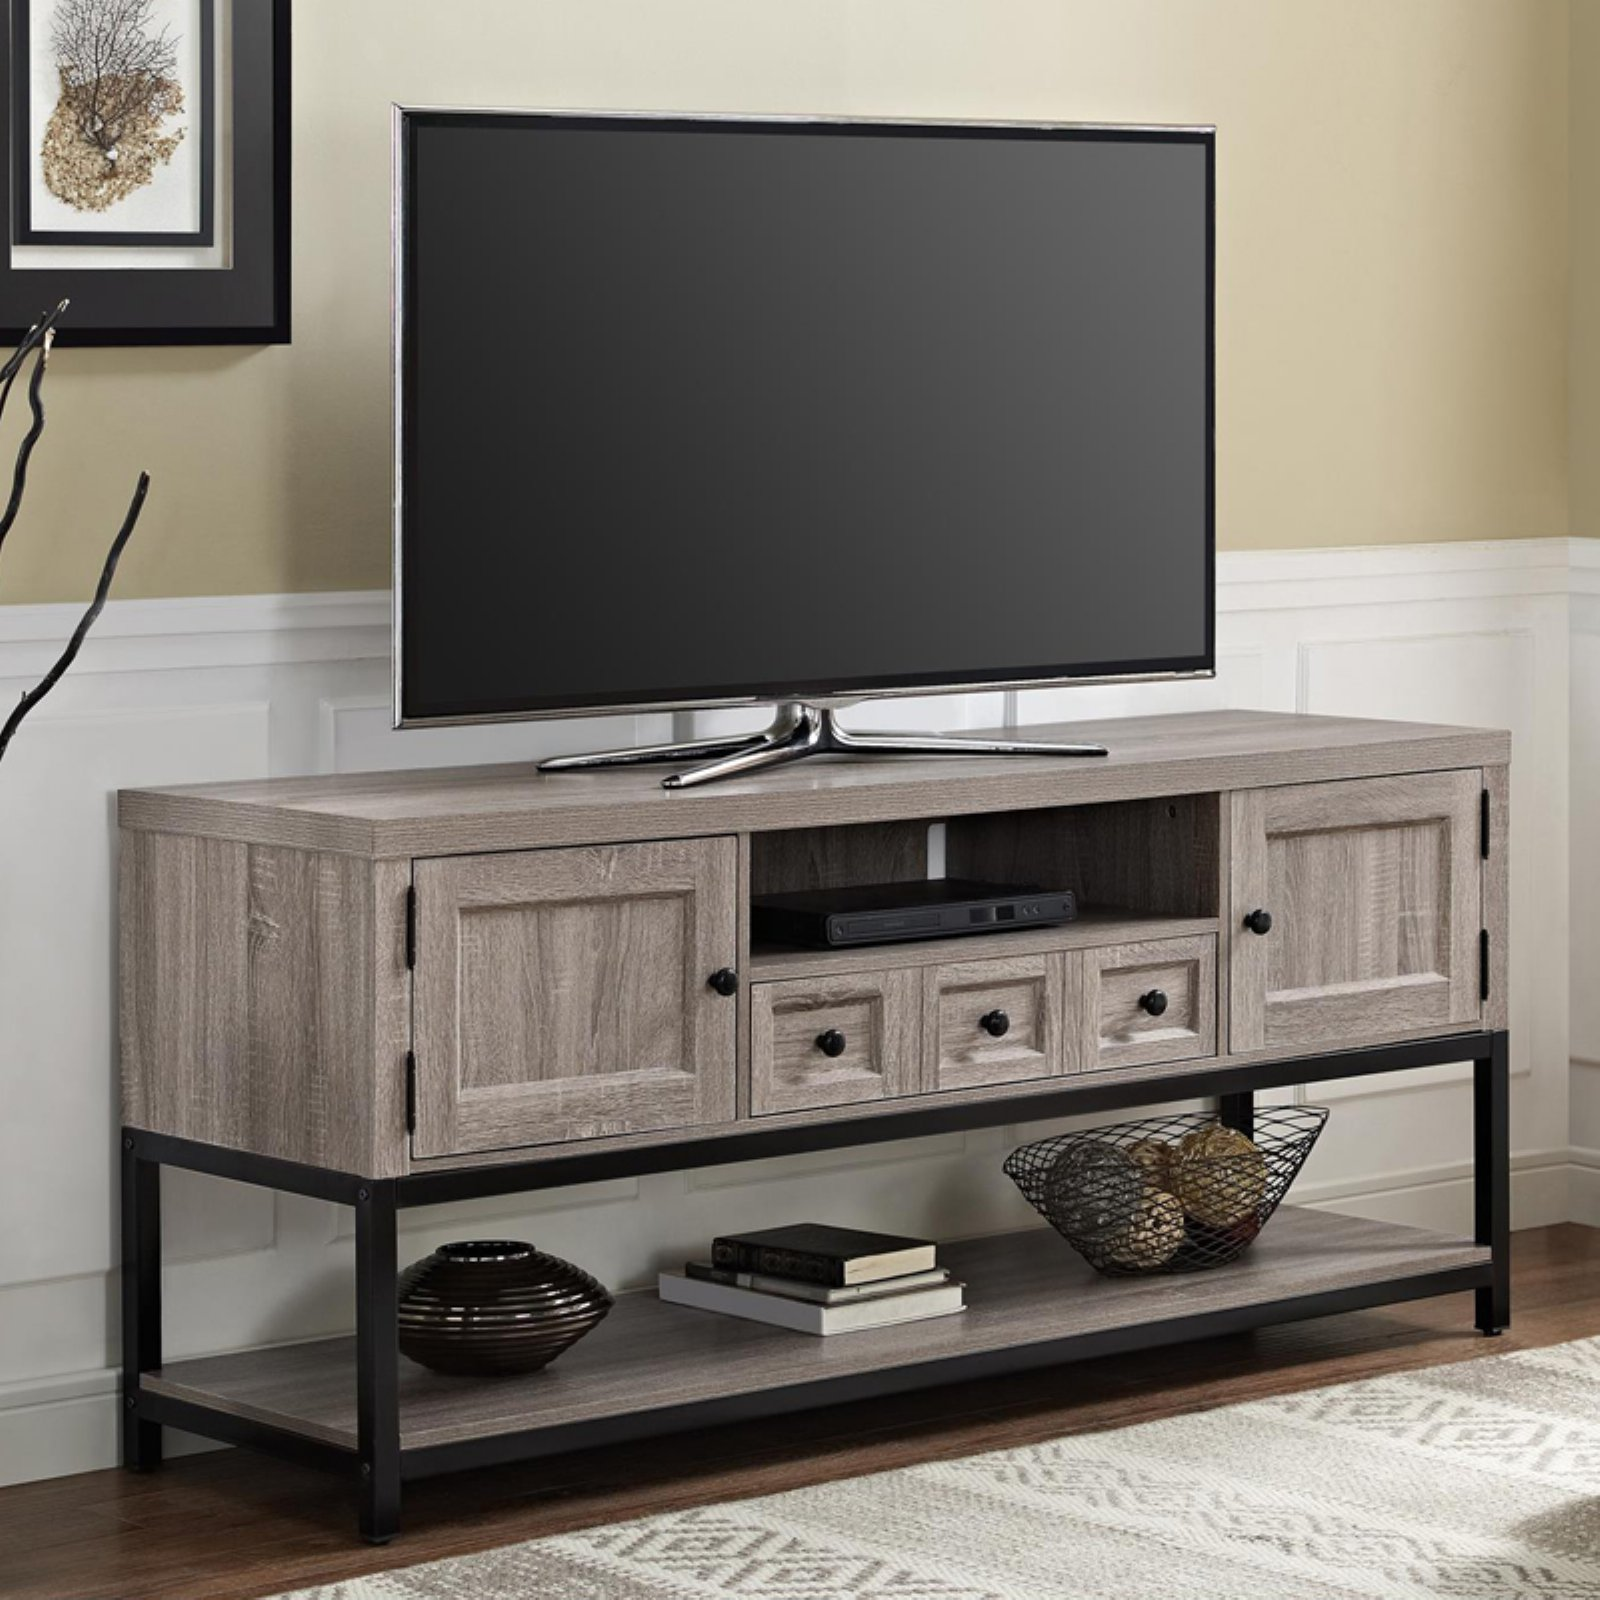 "Ameriwood Home Barrett Mutlipurpose TV Console for TVs up to 70"", Weathered Oak"